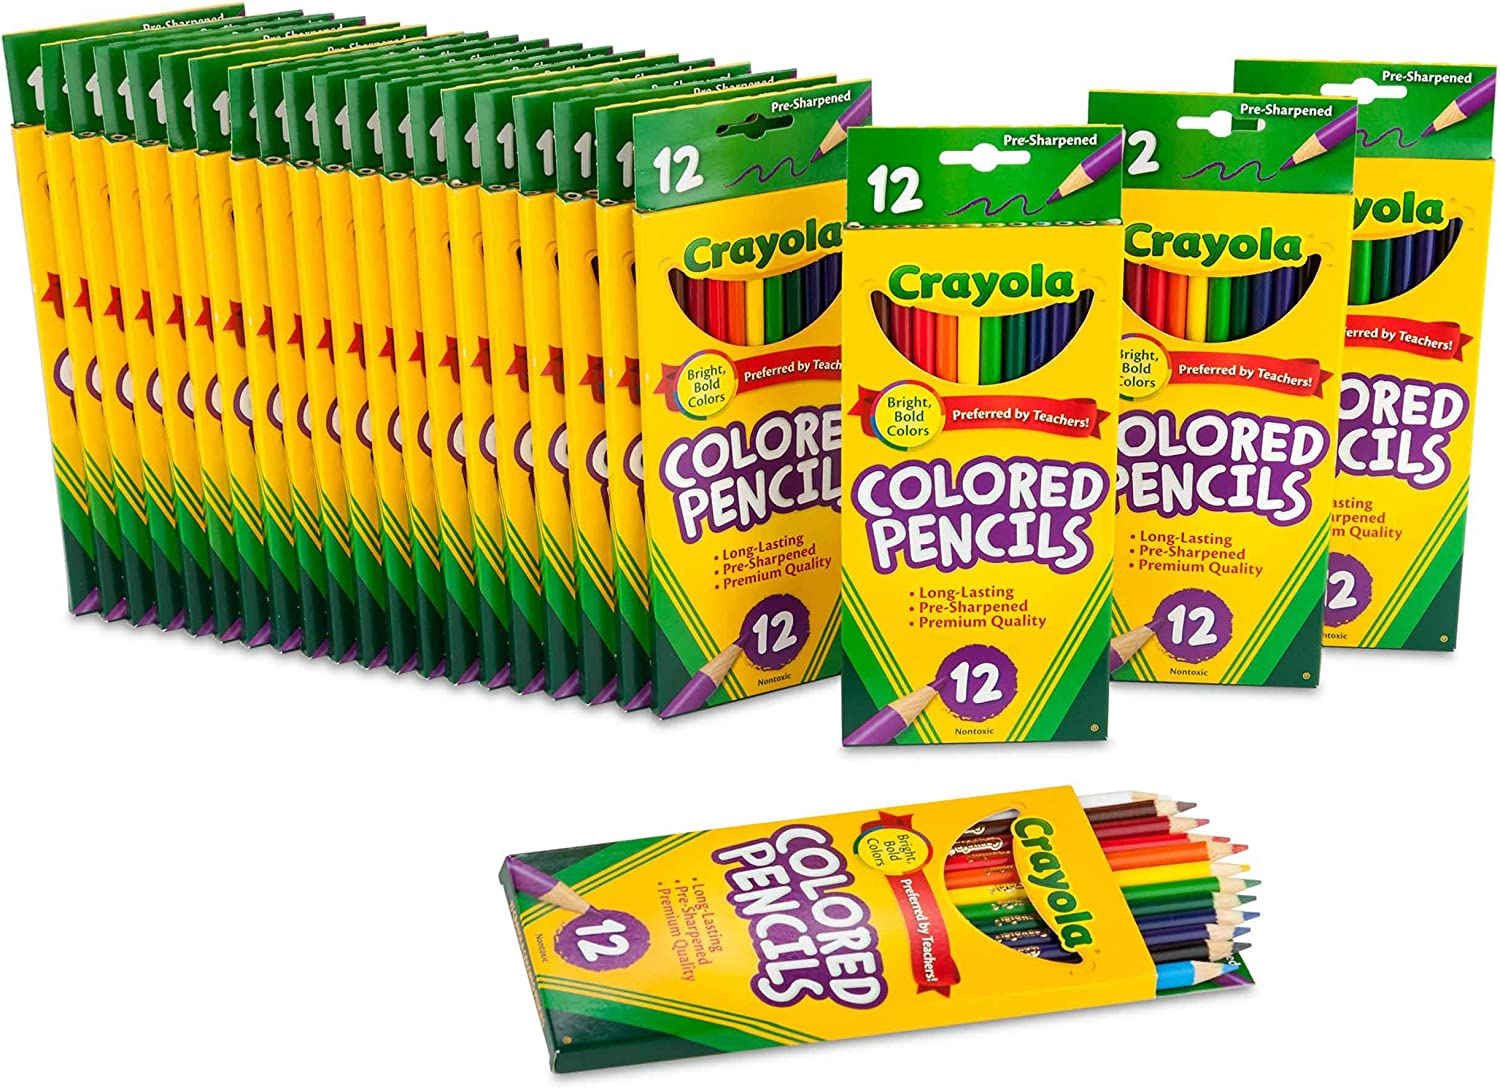 Crayola Spring new work Bulk Colored Pencils 12 Colors Pre-sharpened OFFicial site Assorted